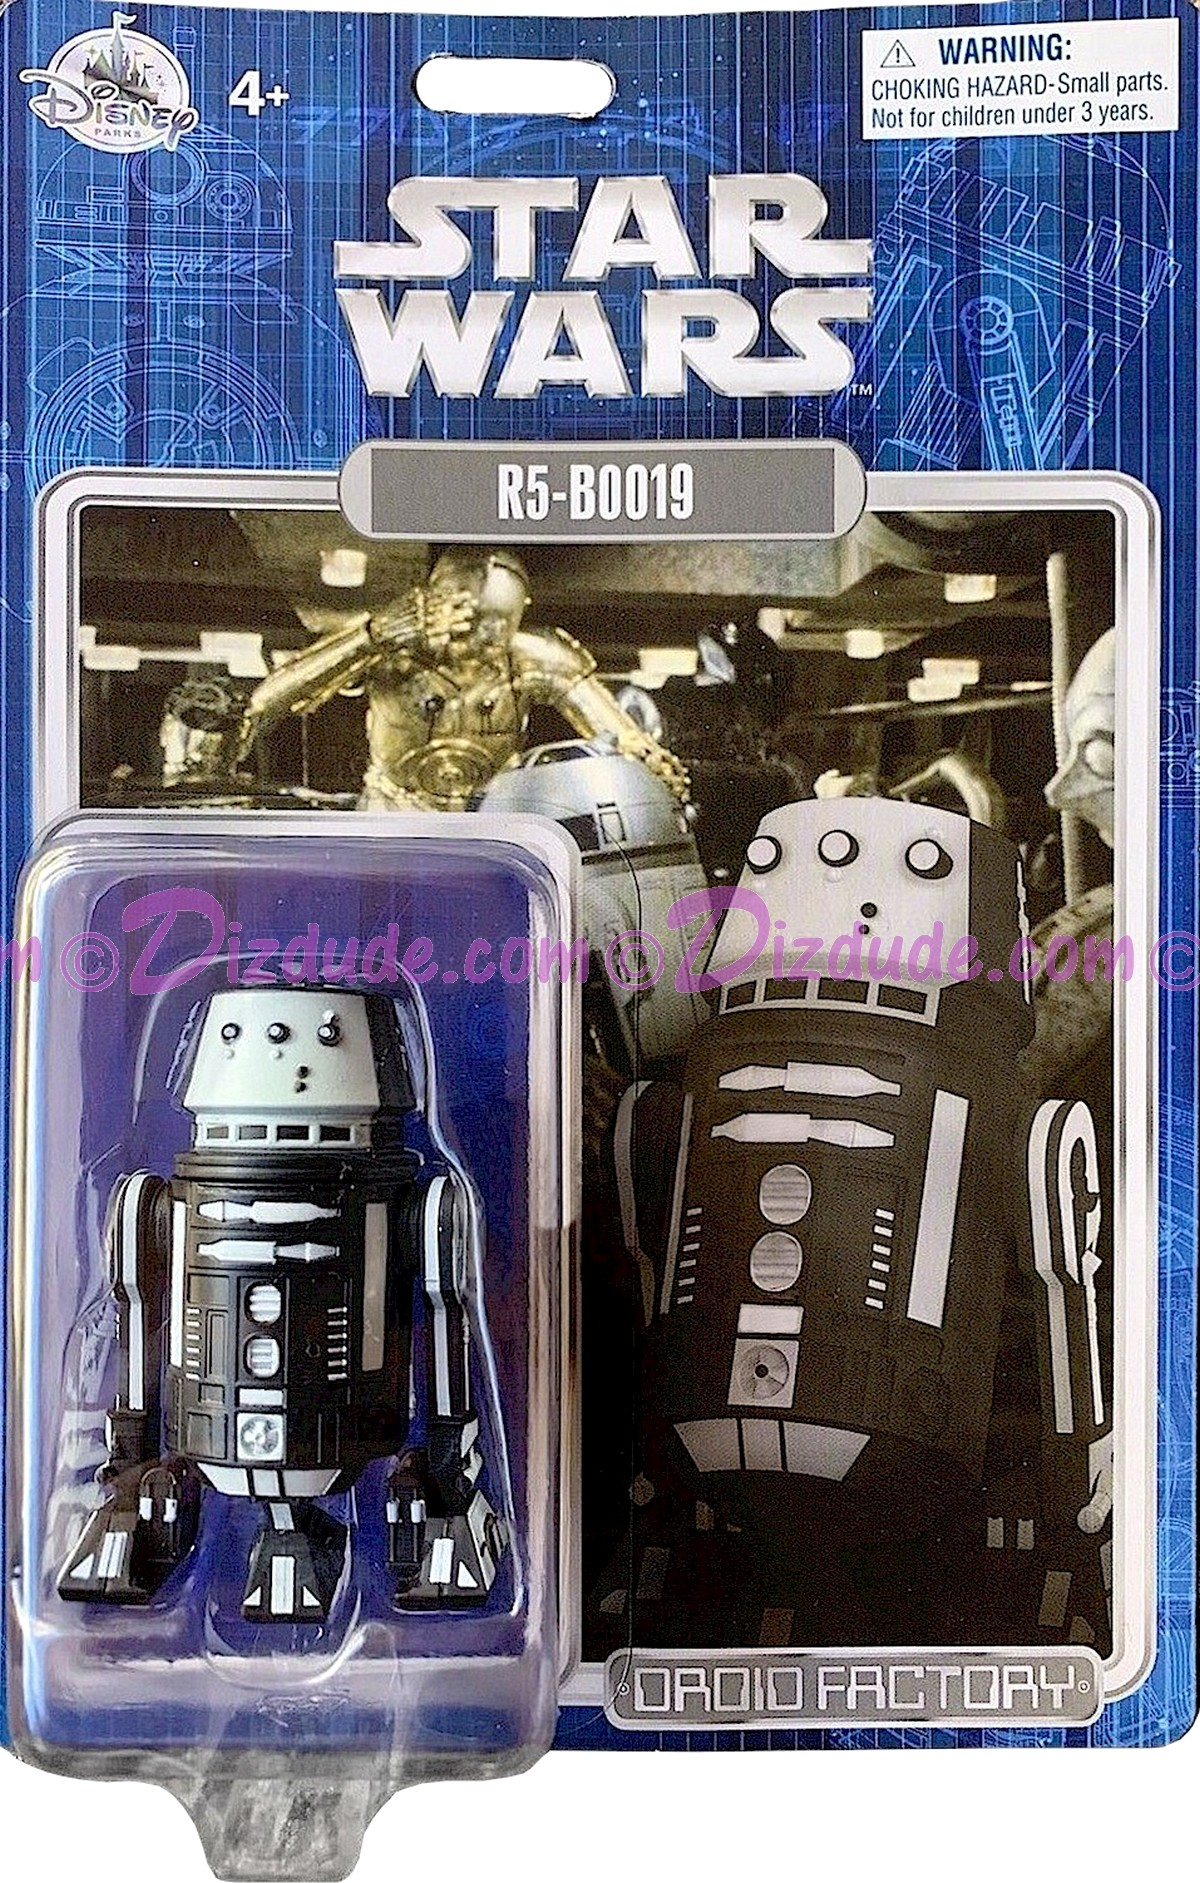 Star Wars R5-B0019 - R5-BOO19 Astromech Droid - Disney World DROID FACTORY Action Figures 3¾ Inch - Limited Release © Dizdude.com